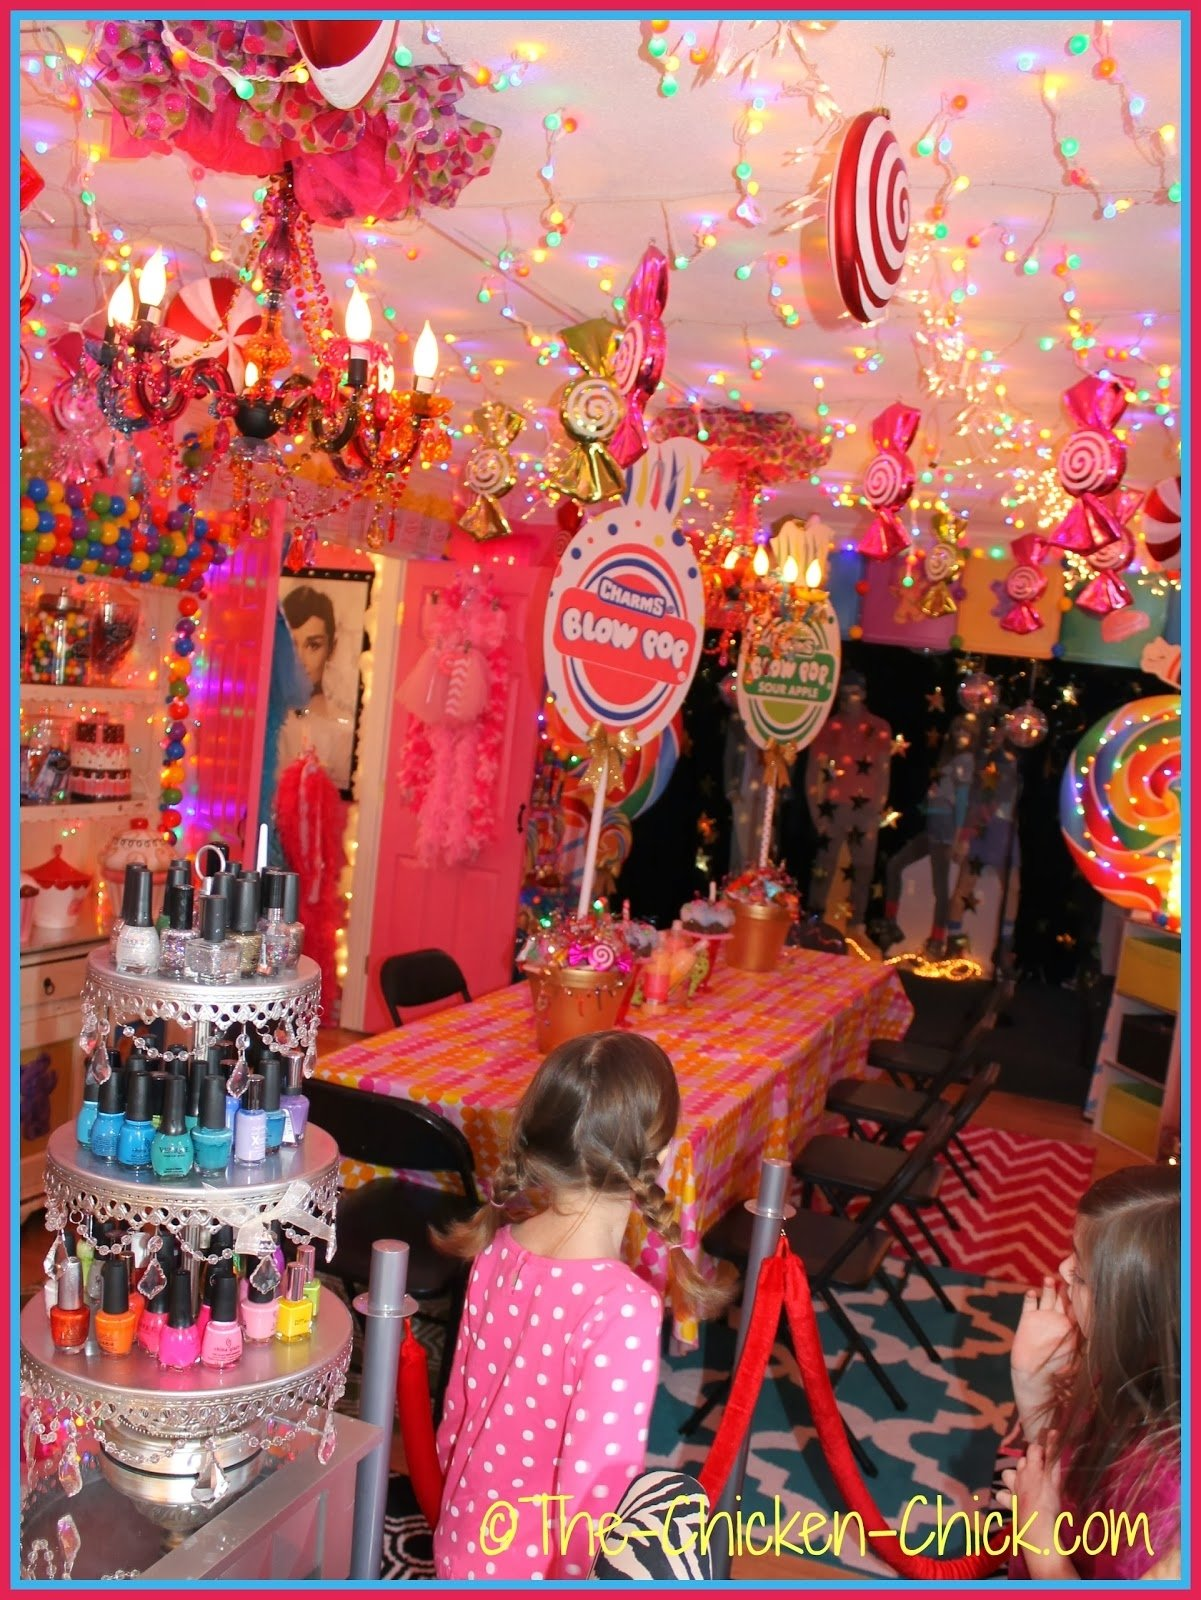 10 Spectacular Fun 13 Year Old Birthday Party Ideas themes birthday good ideas for a 13 year old birthday party girl 1 2020